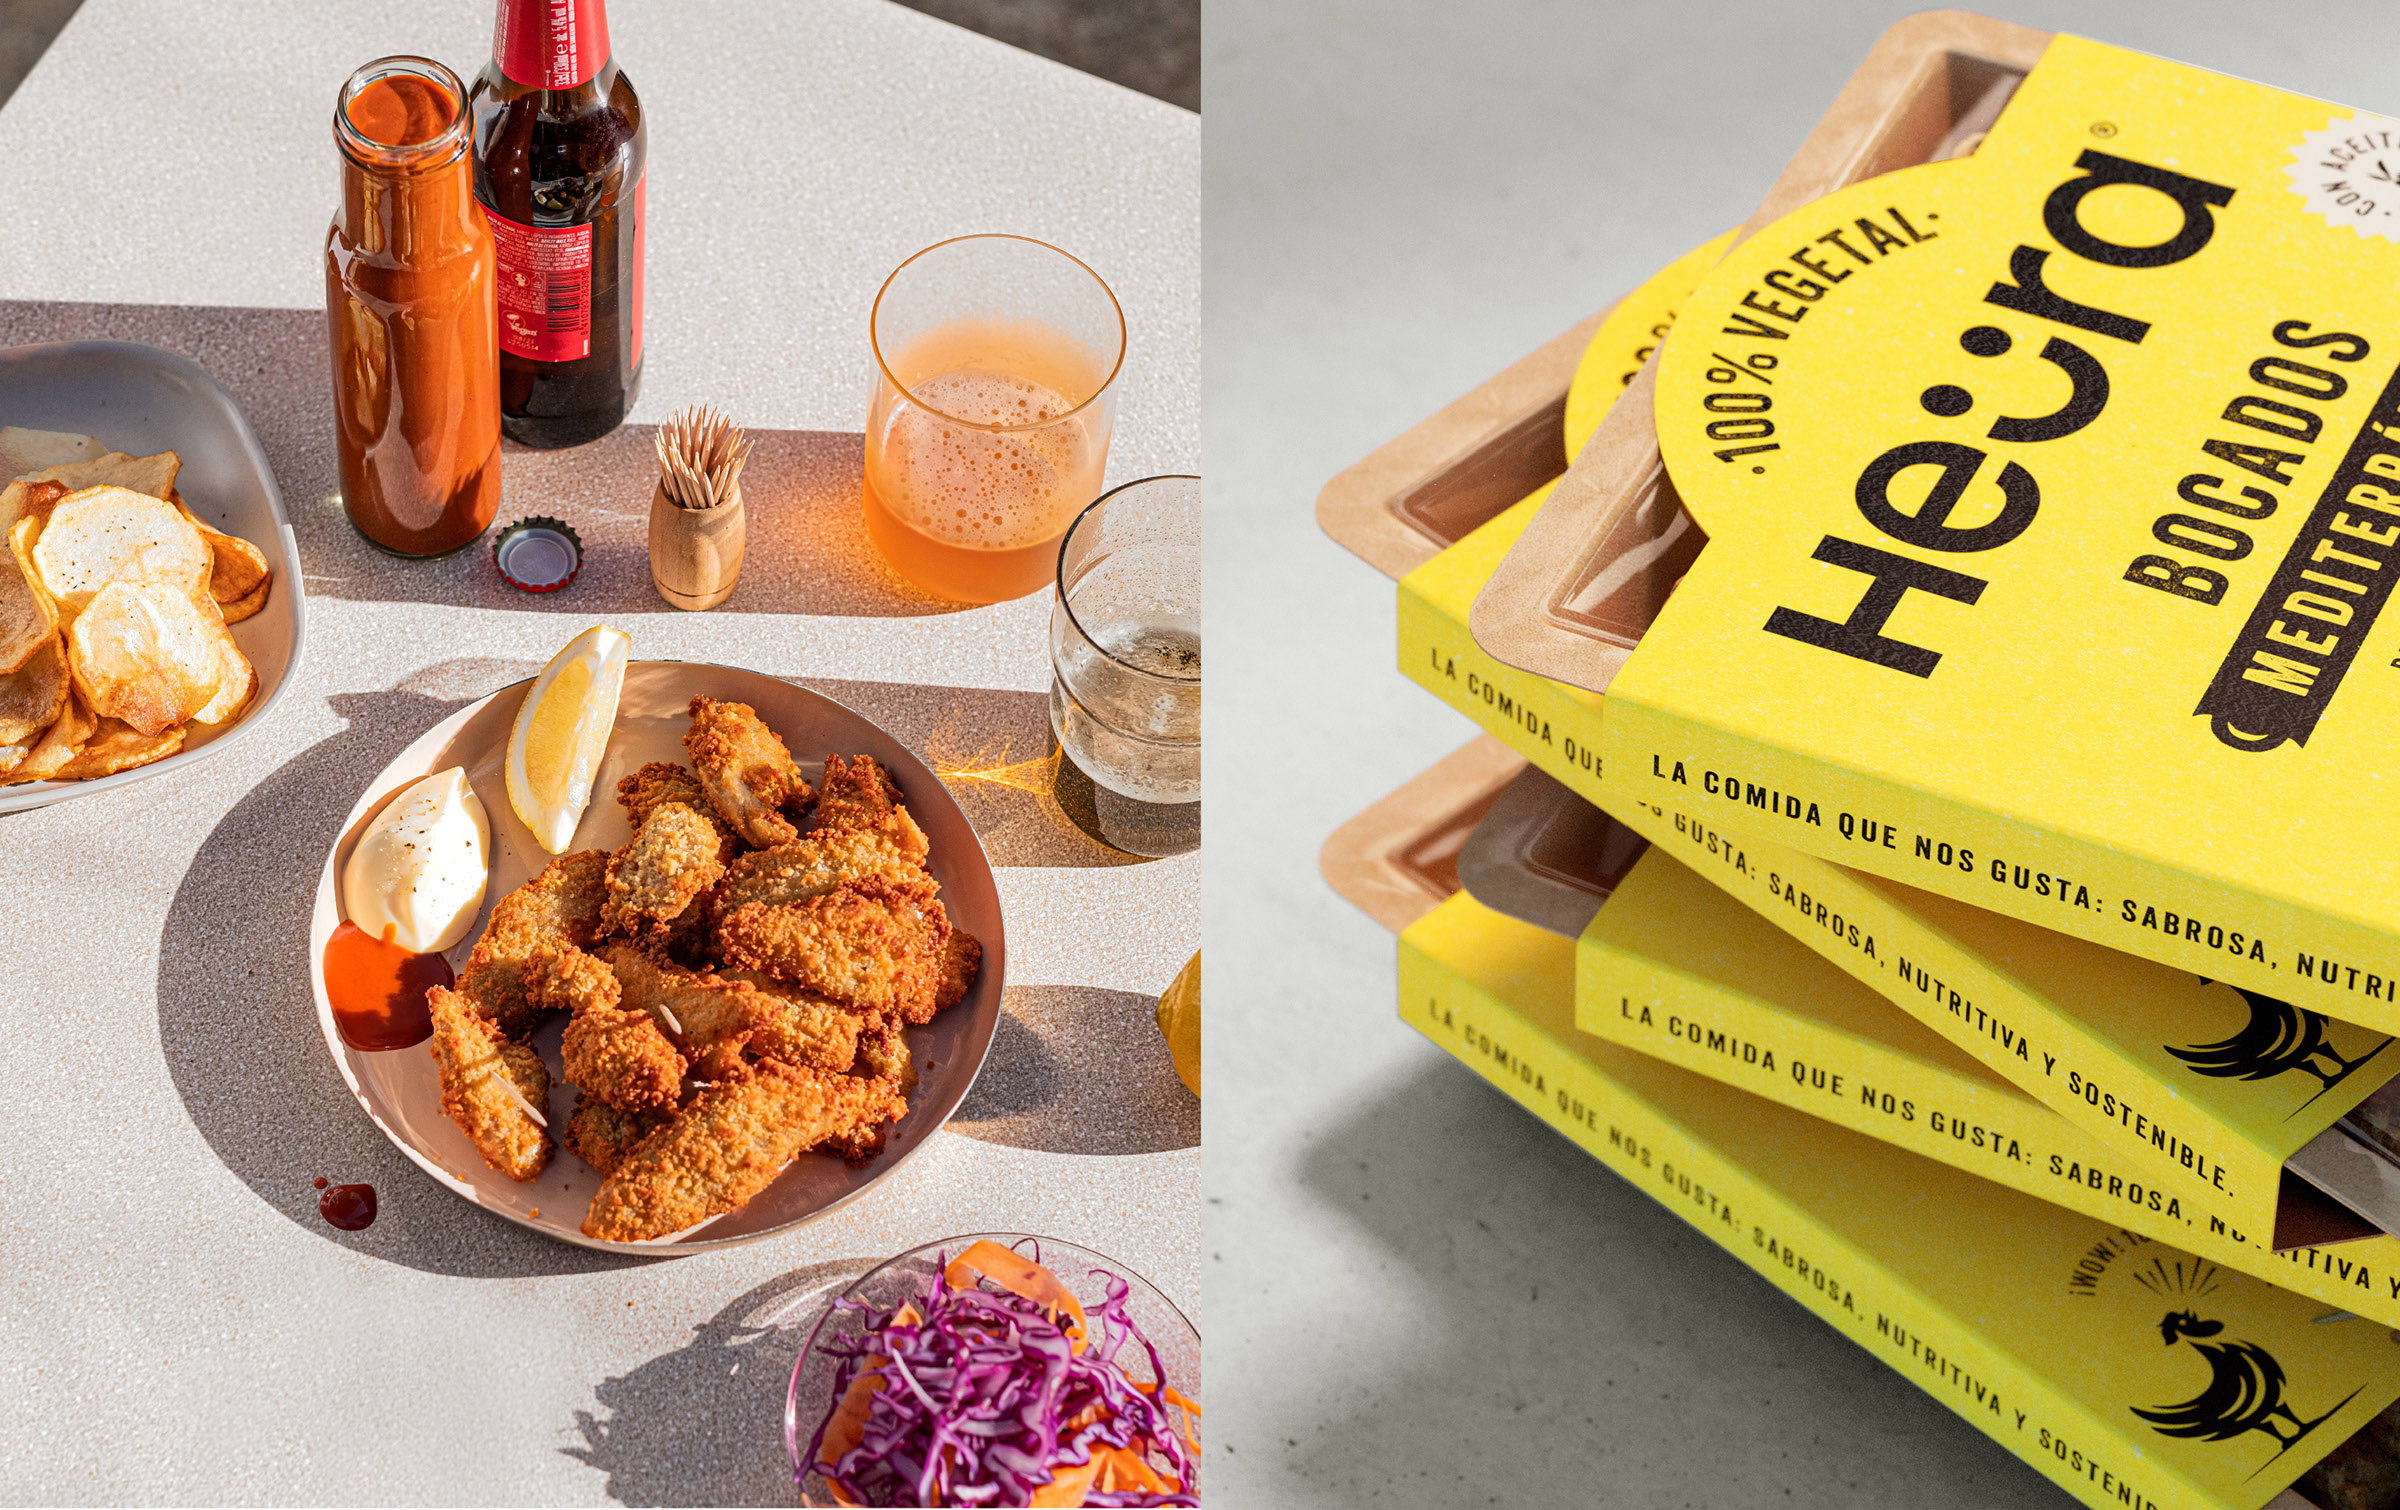 Brand Identity and Packaging Design for Barcelona Based Start-Up Food-Tech Company Heura